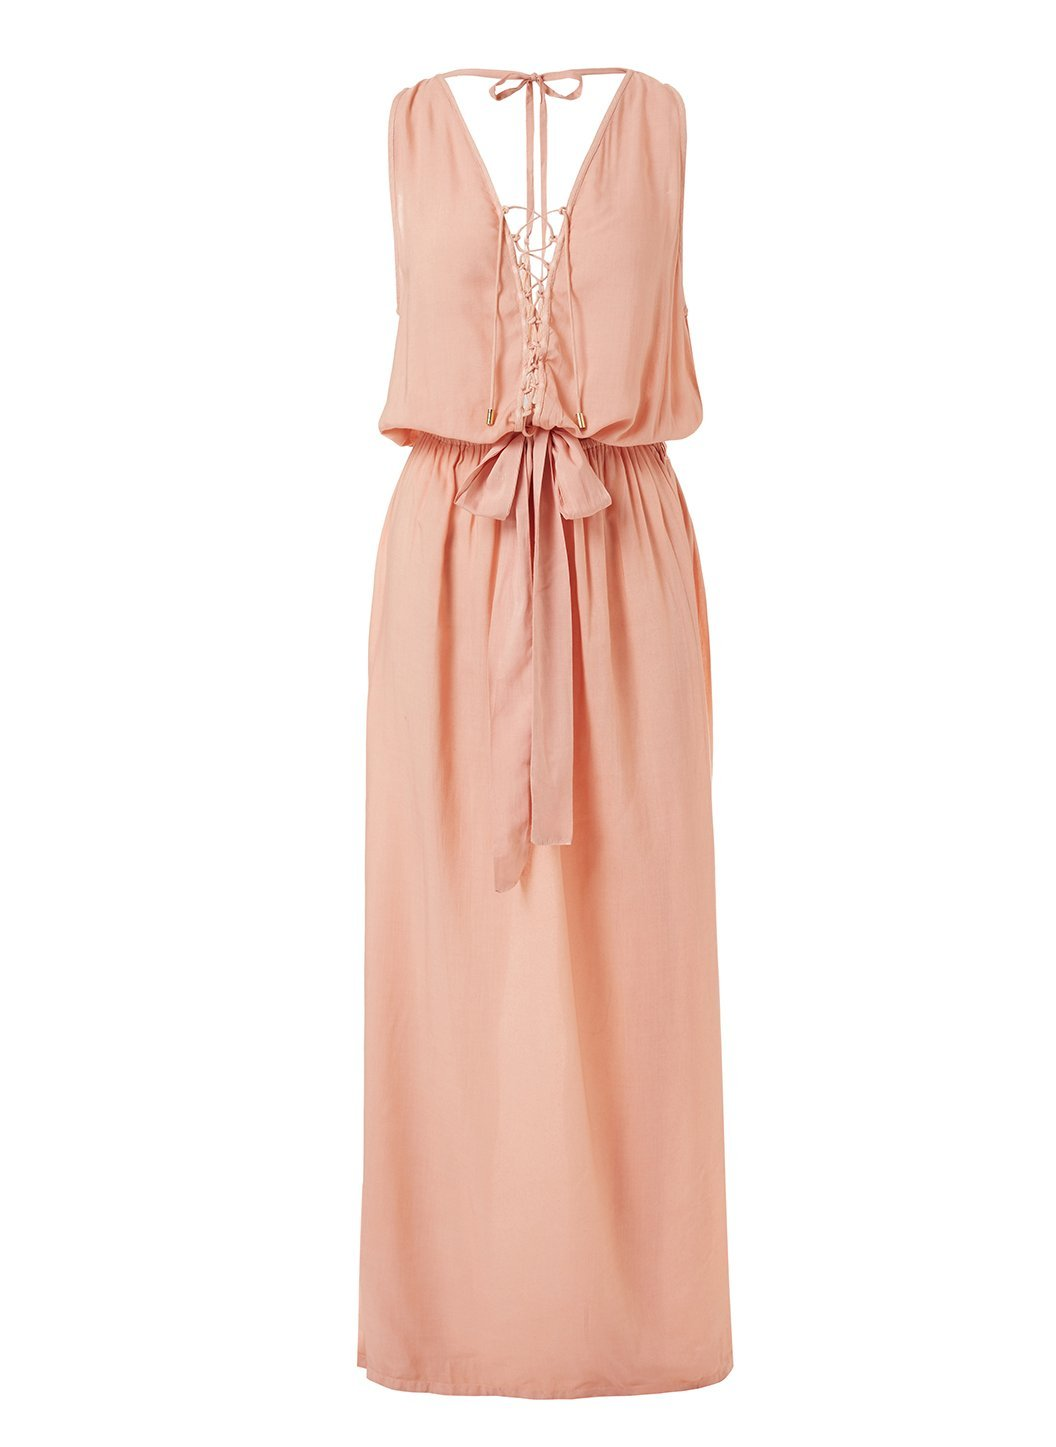 jacquie tan laceup belted maxi dress 2019